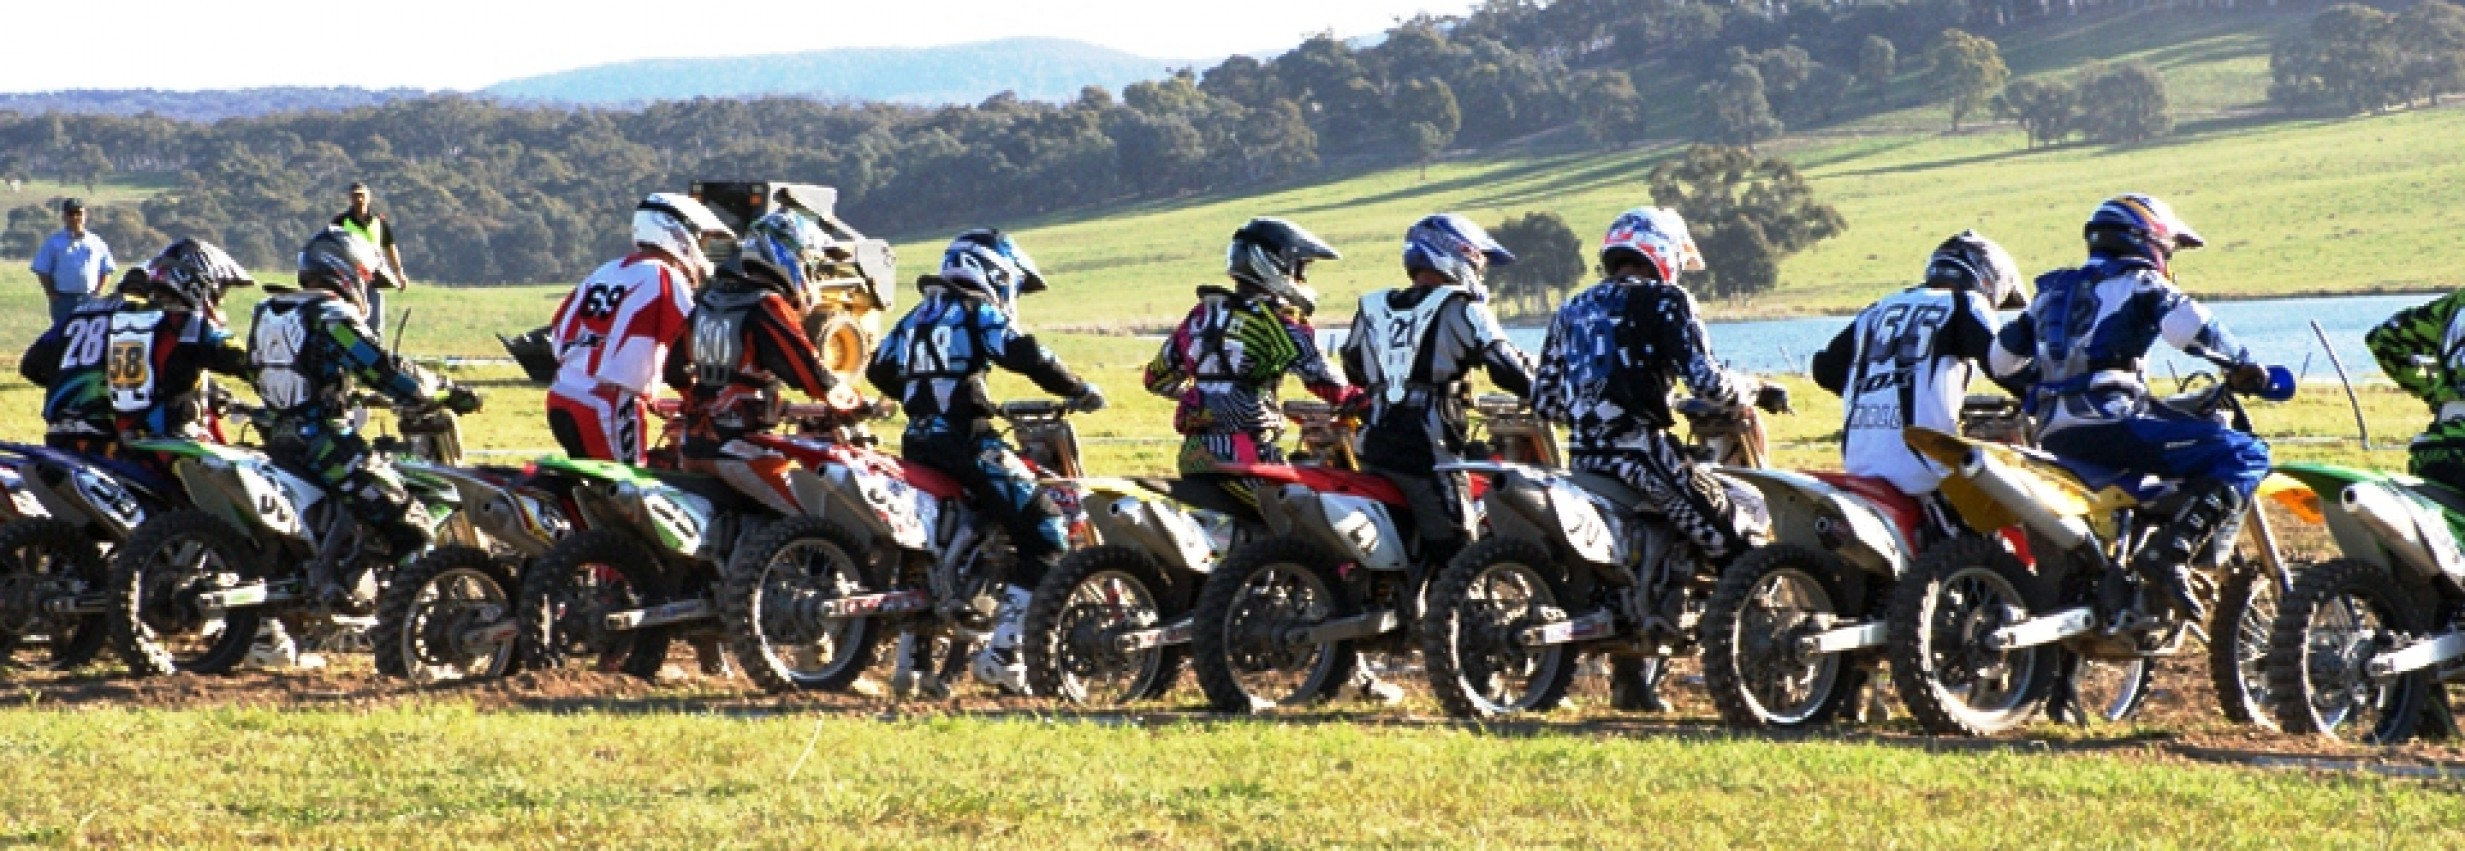 Goulburn Motorcycle Club